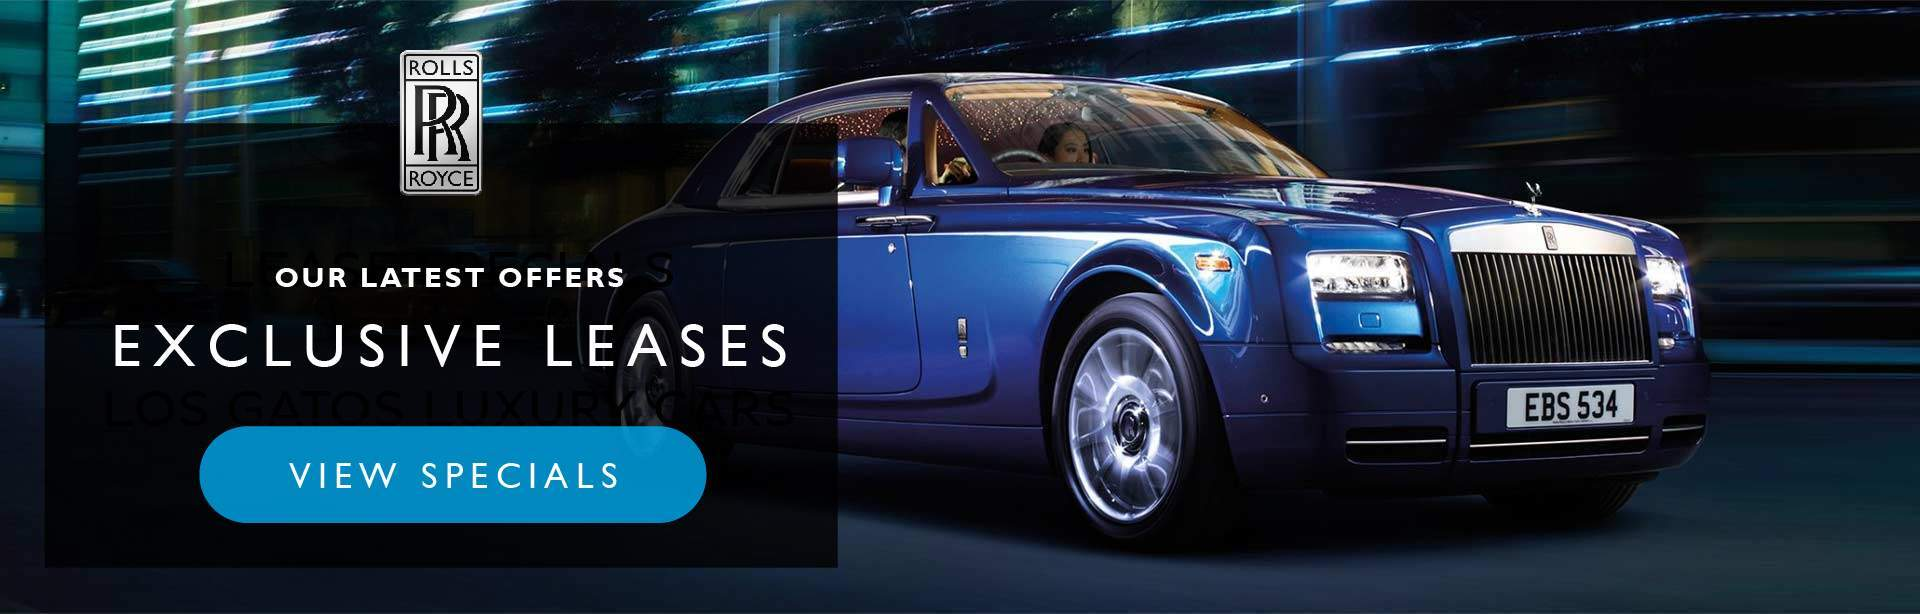 Rolls Royce Lease Specials